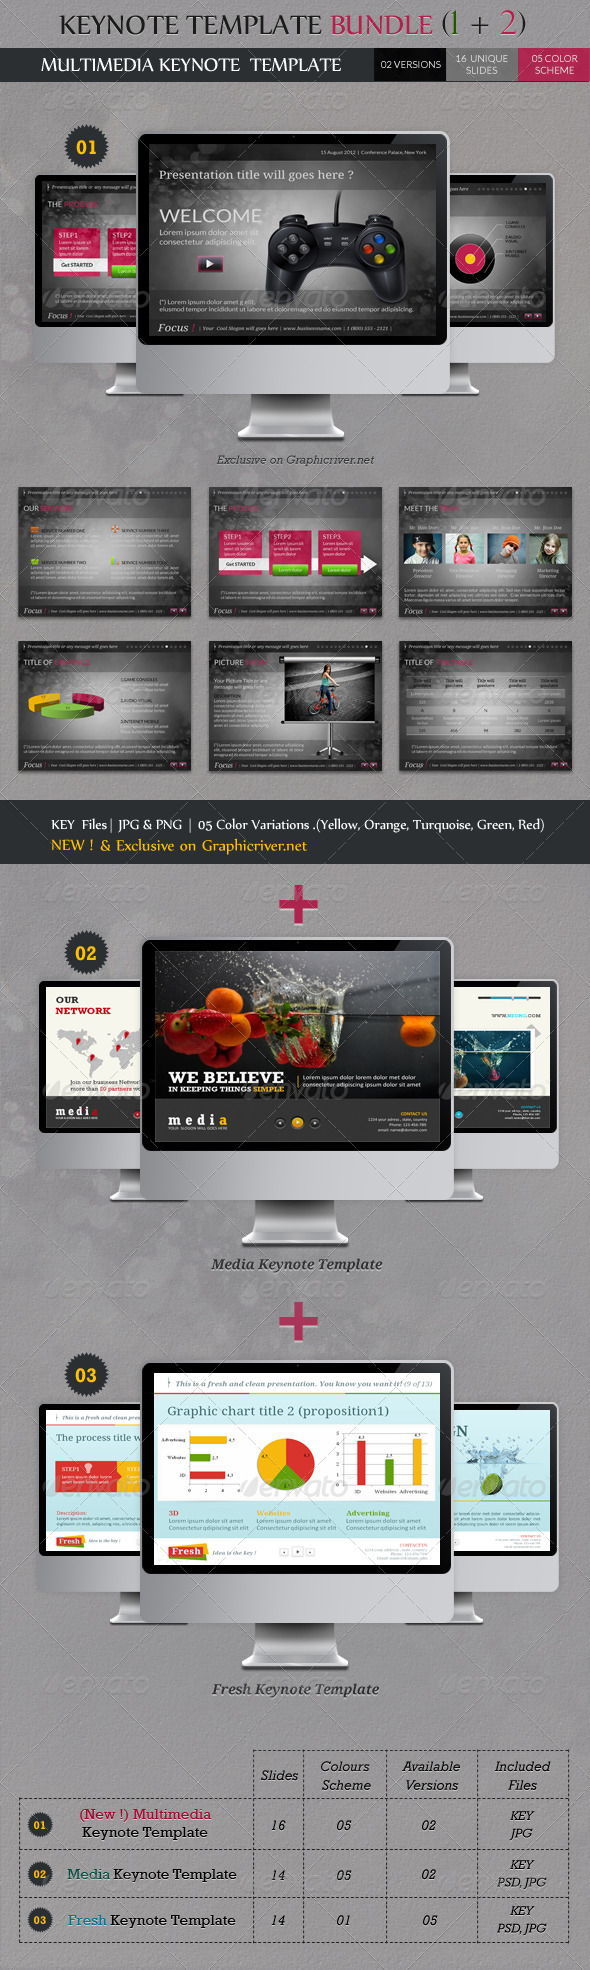 Keynote Templates Bundle (1 + 2) - Keynote Templates Presentation Templates